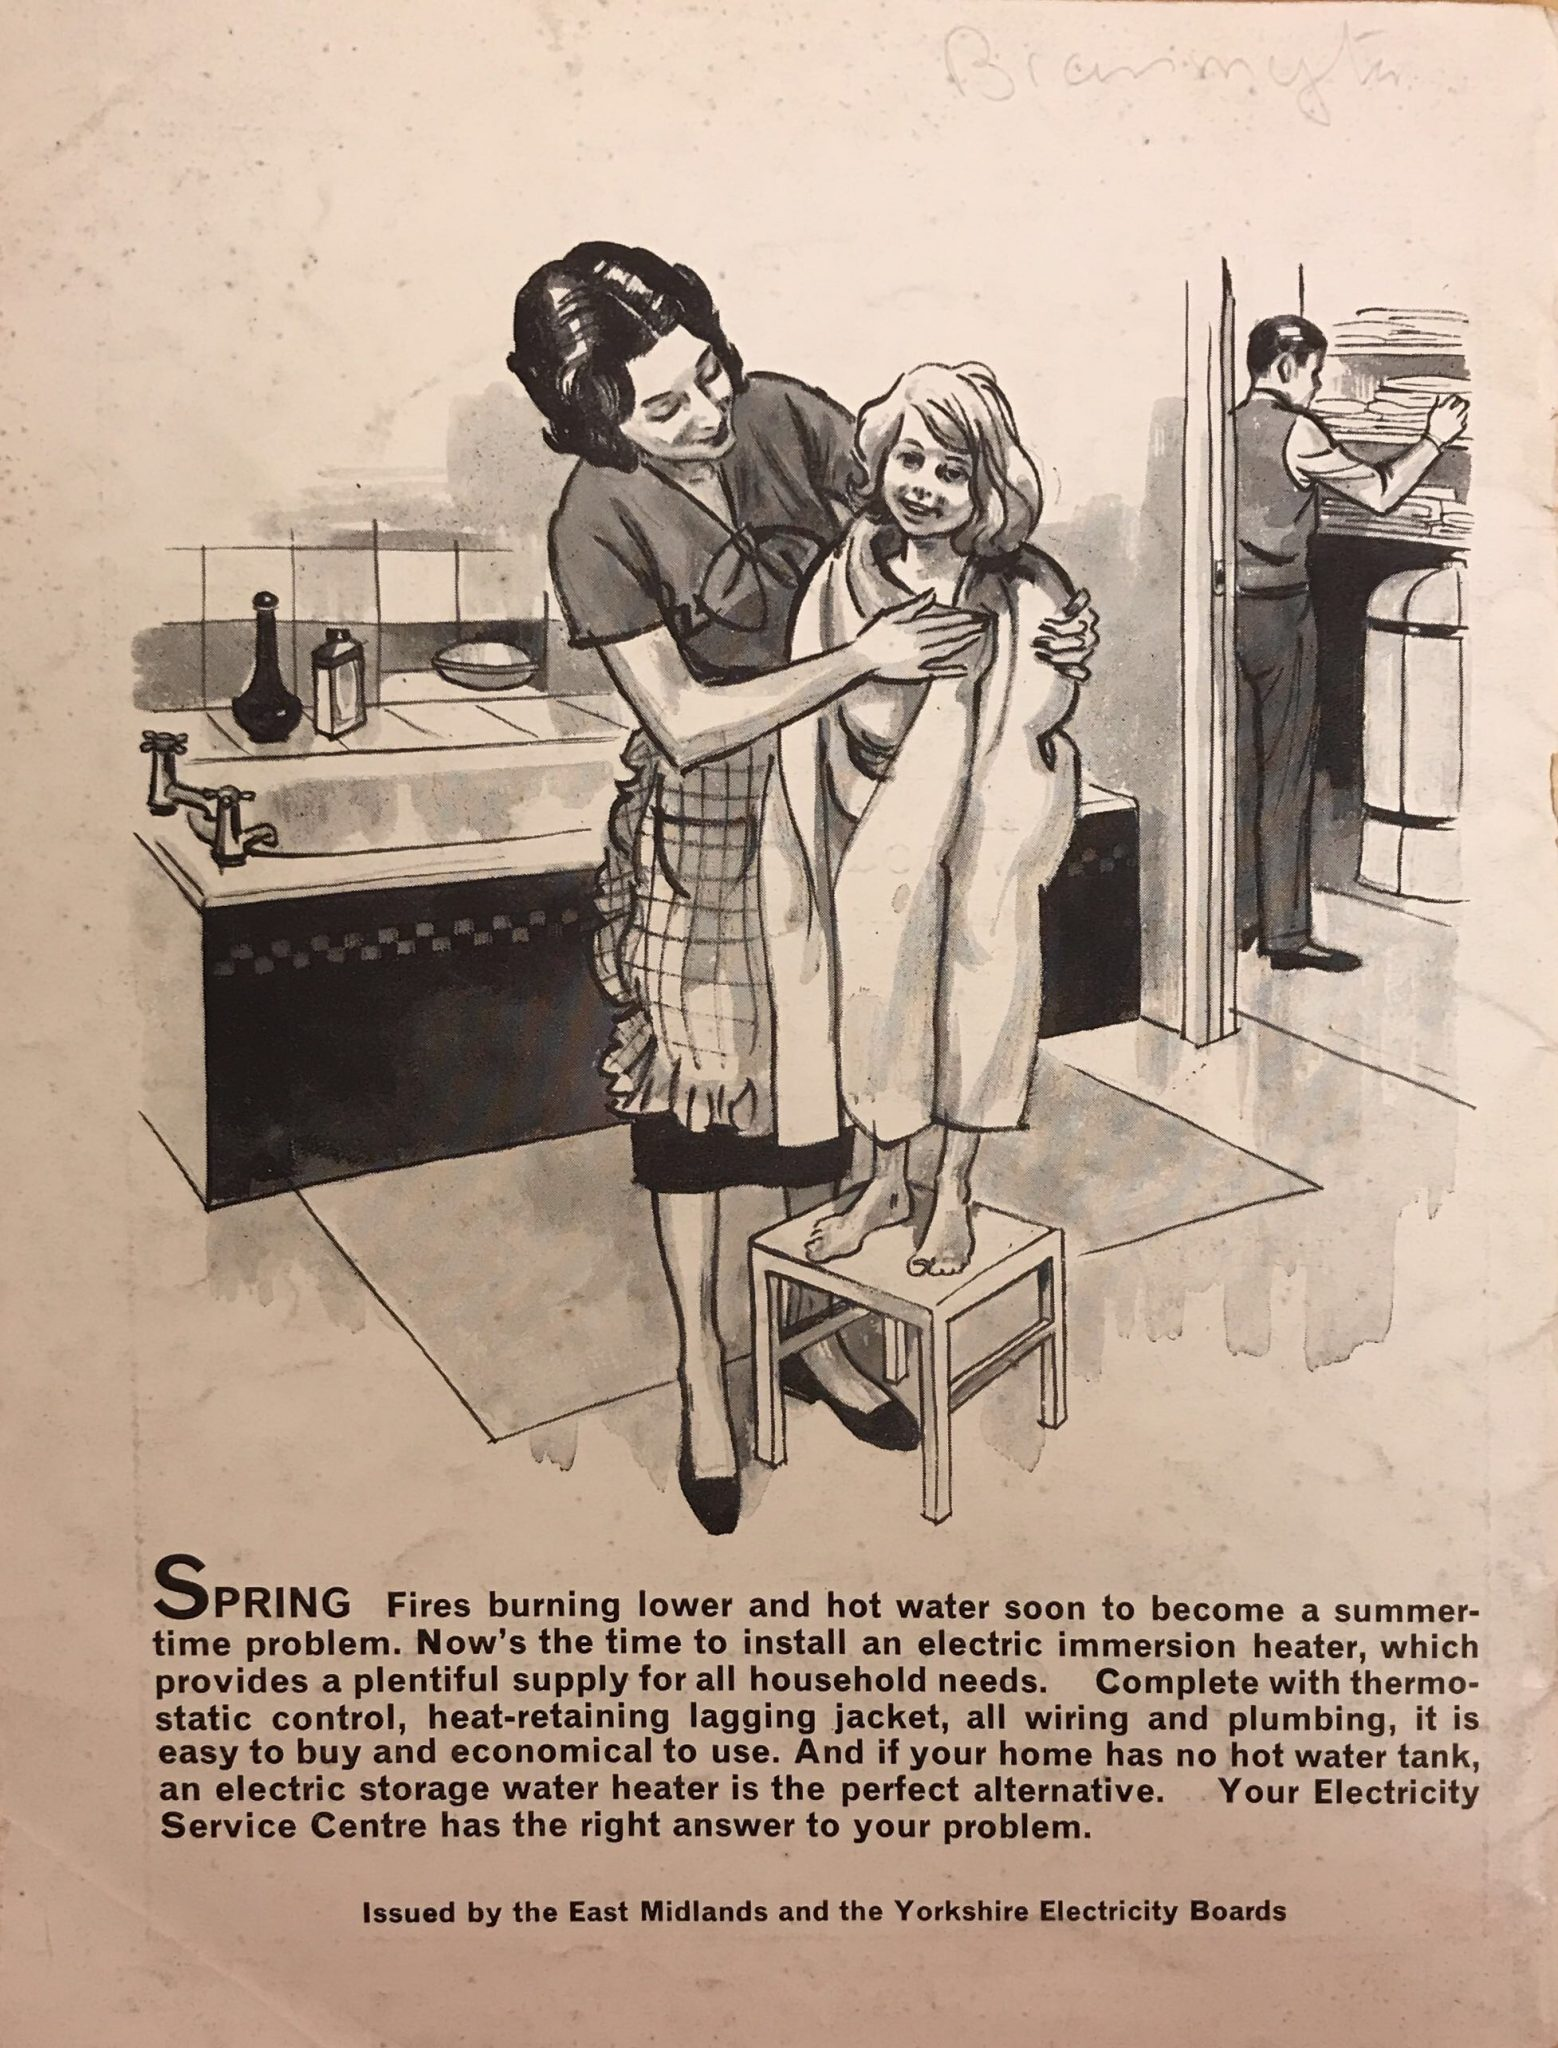 Advert for electricity and immersion heaters in 1962